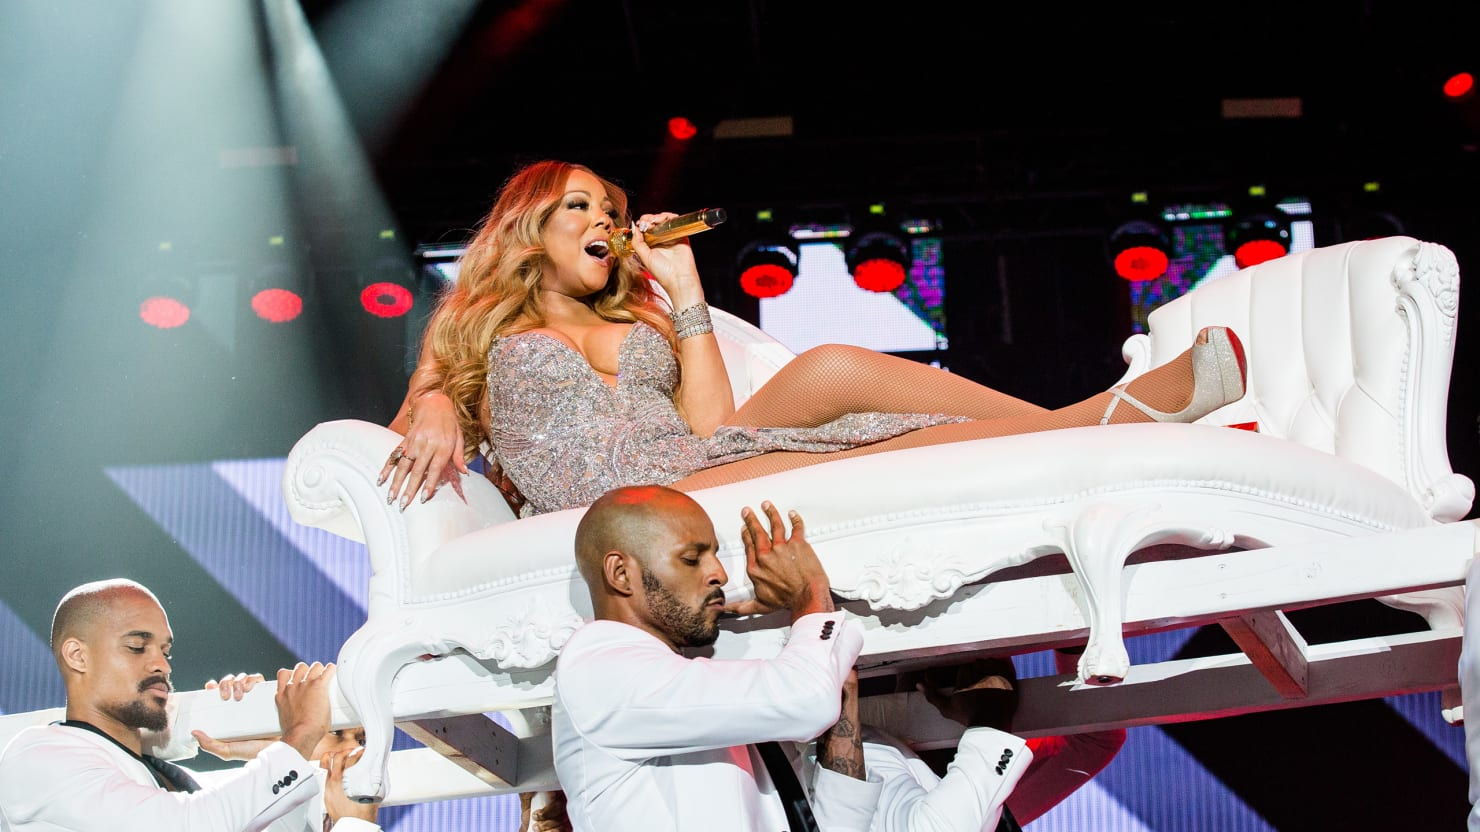 Mariah carey now has her own entrance music let us celebrate the greatest diva ever - Mariah carey diva ...